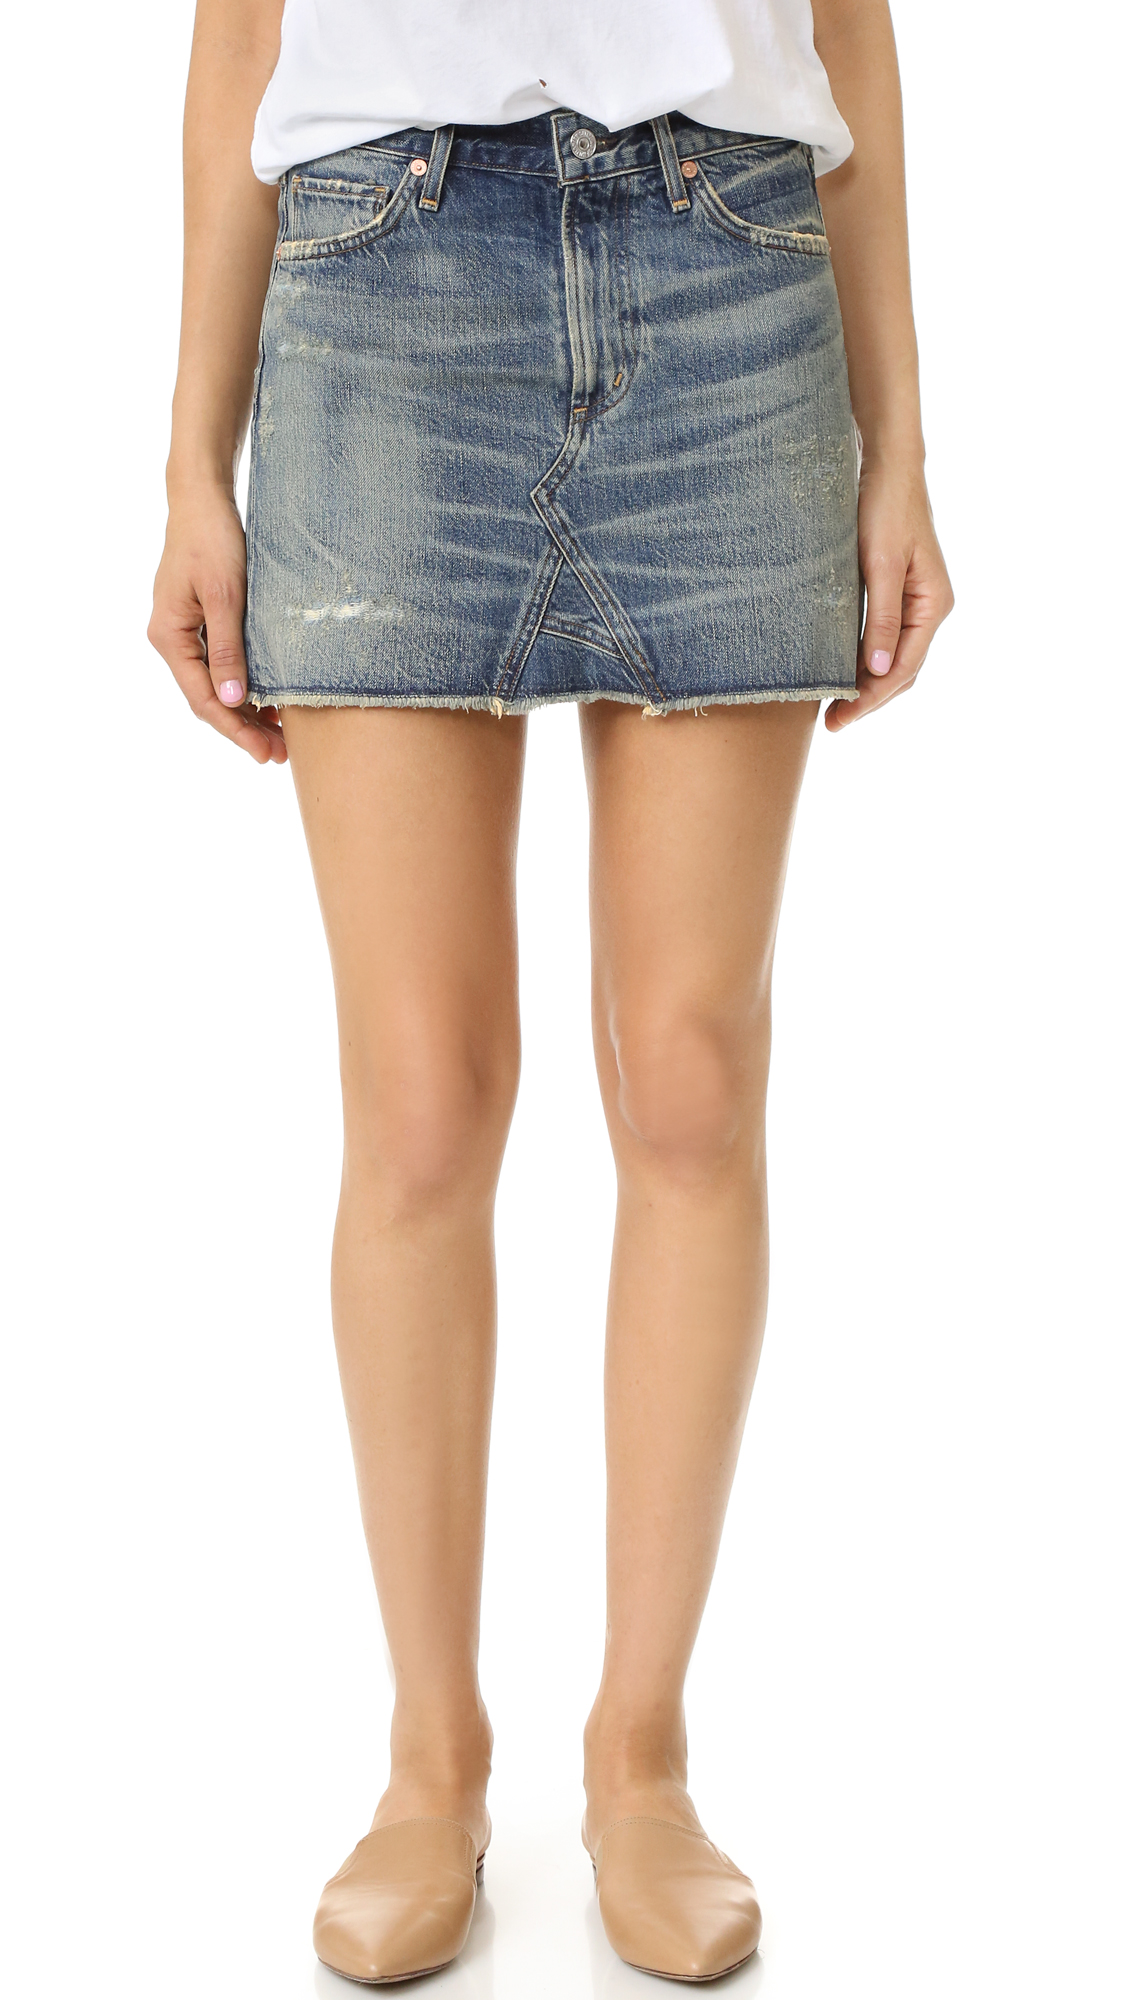 Citizens Of Humanity Cutoff Miniskirt - Greenpoint at Shopbop